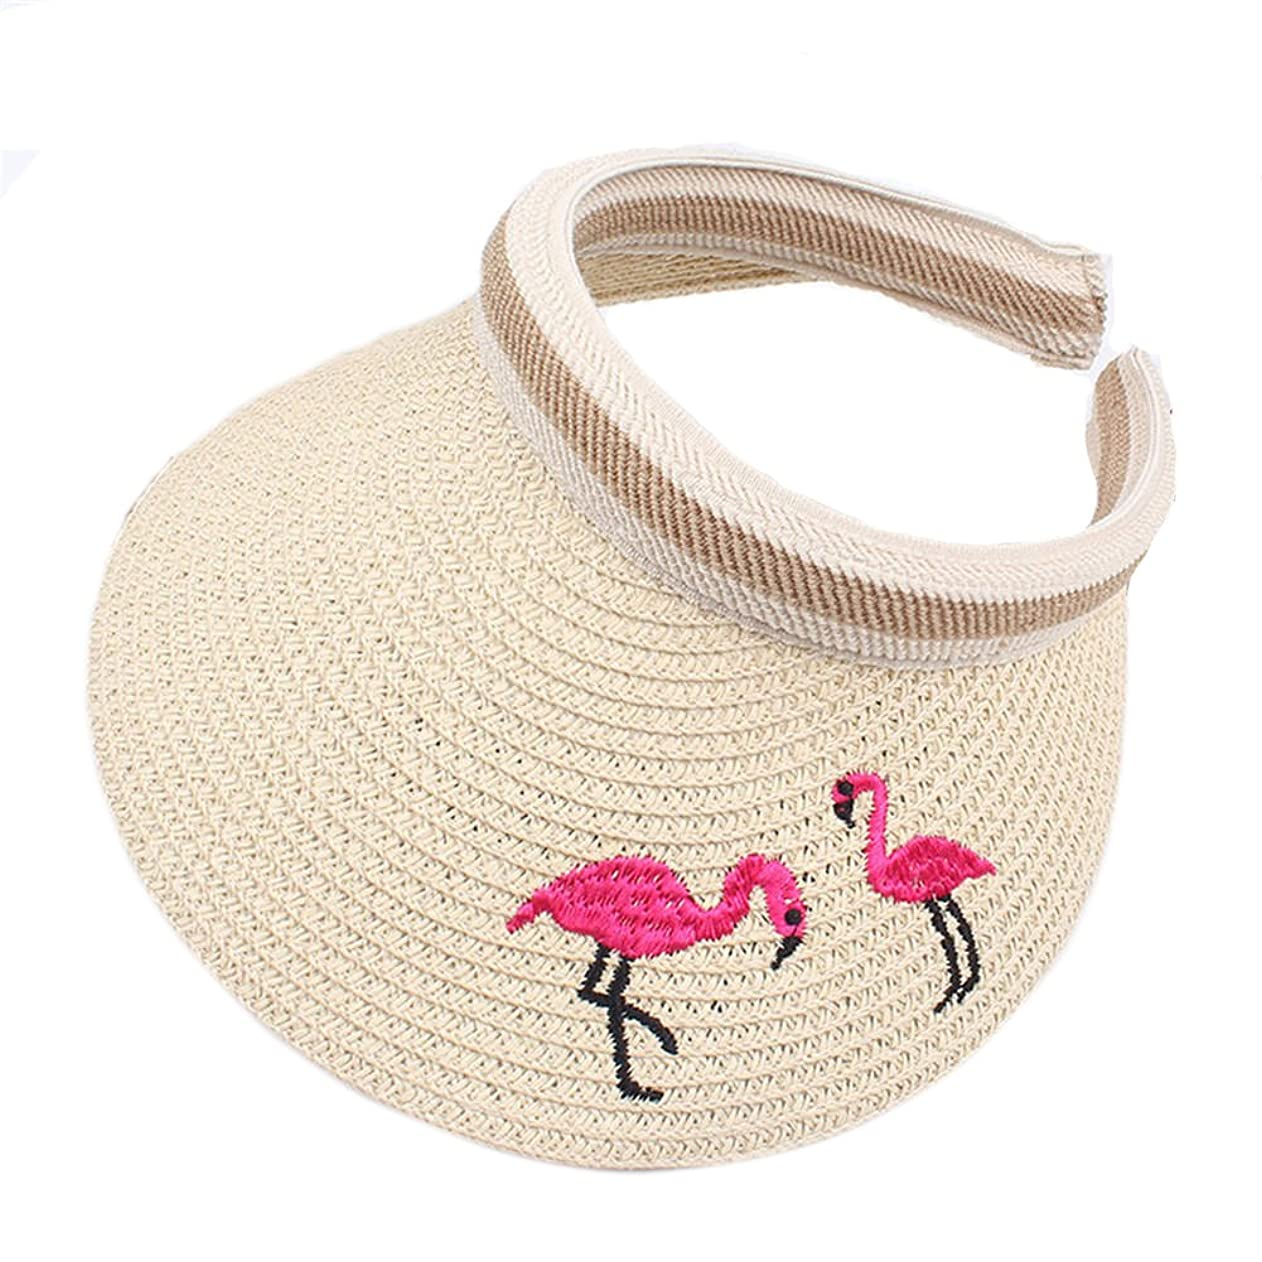 BIBITIME Straw Hat Flamingo Embroidered Sunhat for Kids 3-8 Years Open Top Cap ysizvlmkogo59764